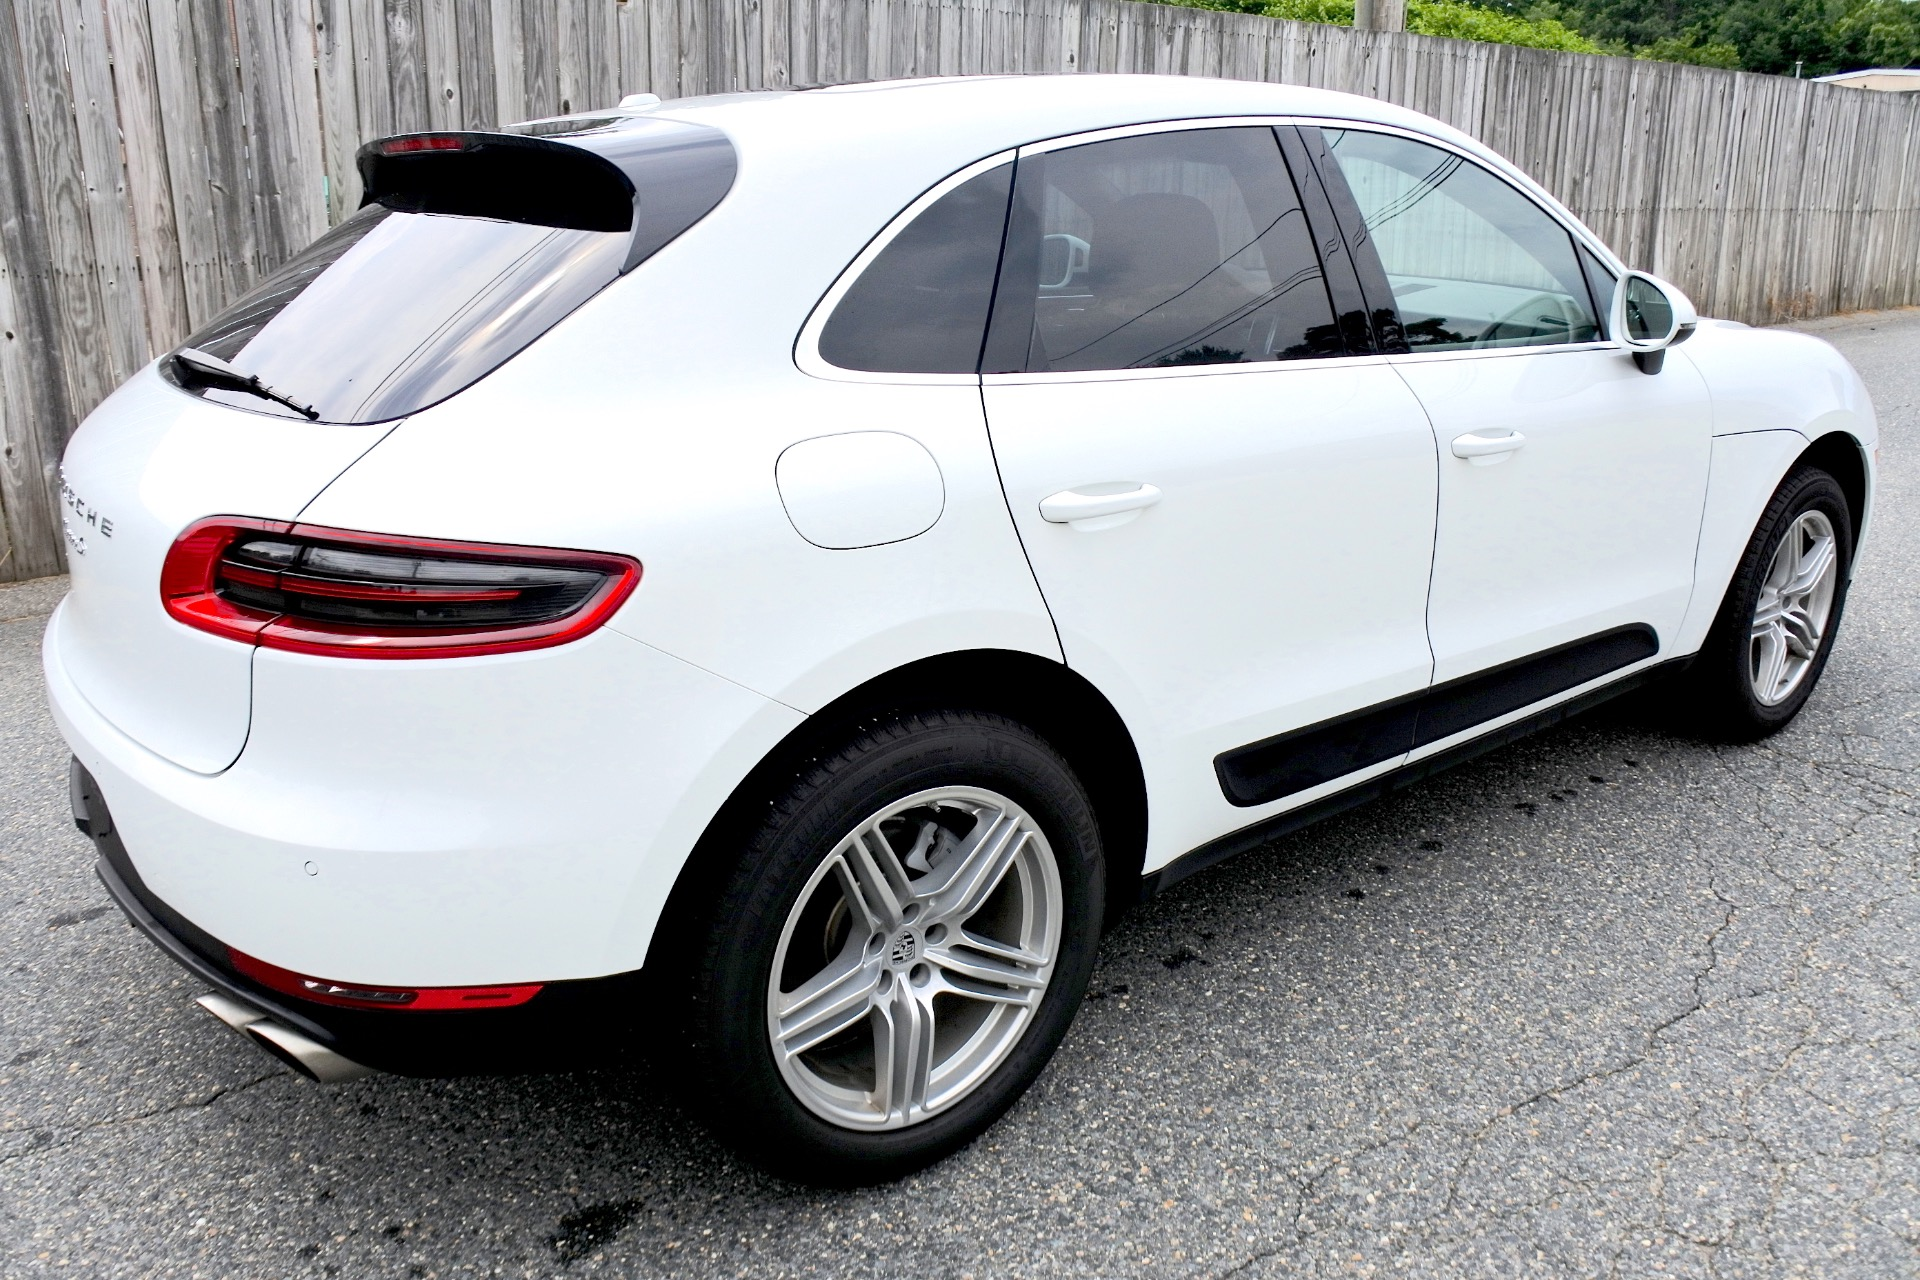 Used 2015 Porsche Macan AWD 4dr S Used 2015 Porsche Macan AWD 4dr S for sale  at Metro West Motorcars LLC in Shrewsbury MA 5